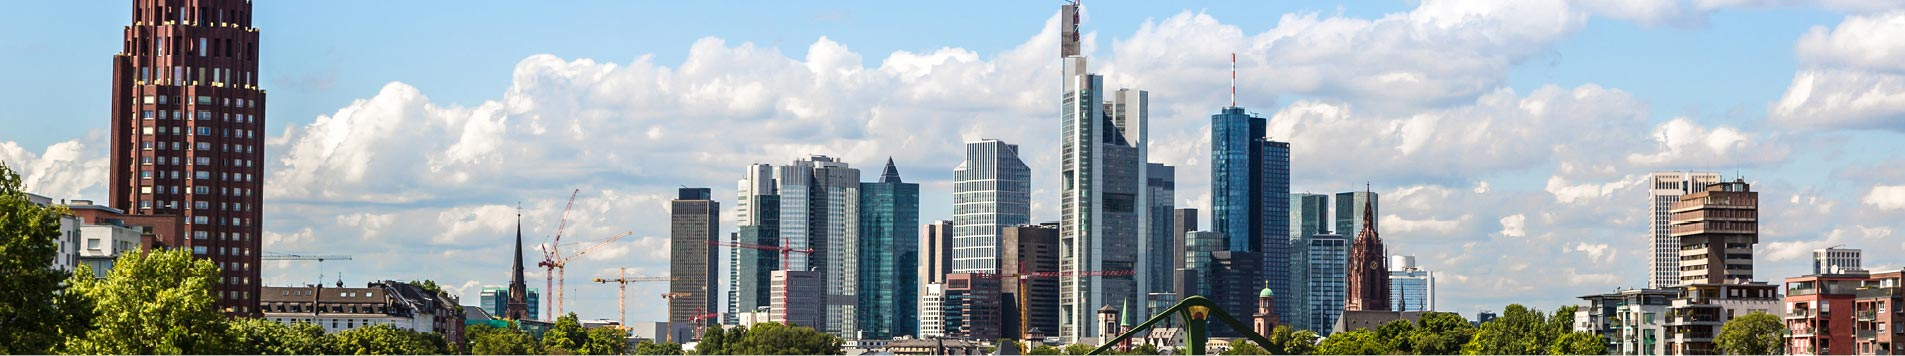 IR-App Investor Relations Frankfurt am Main